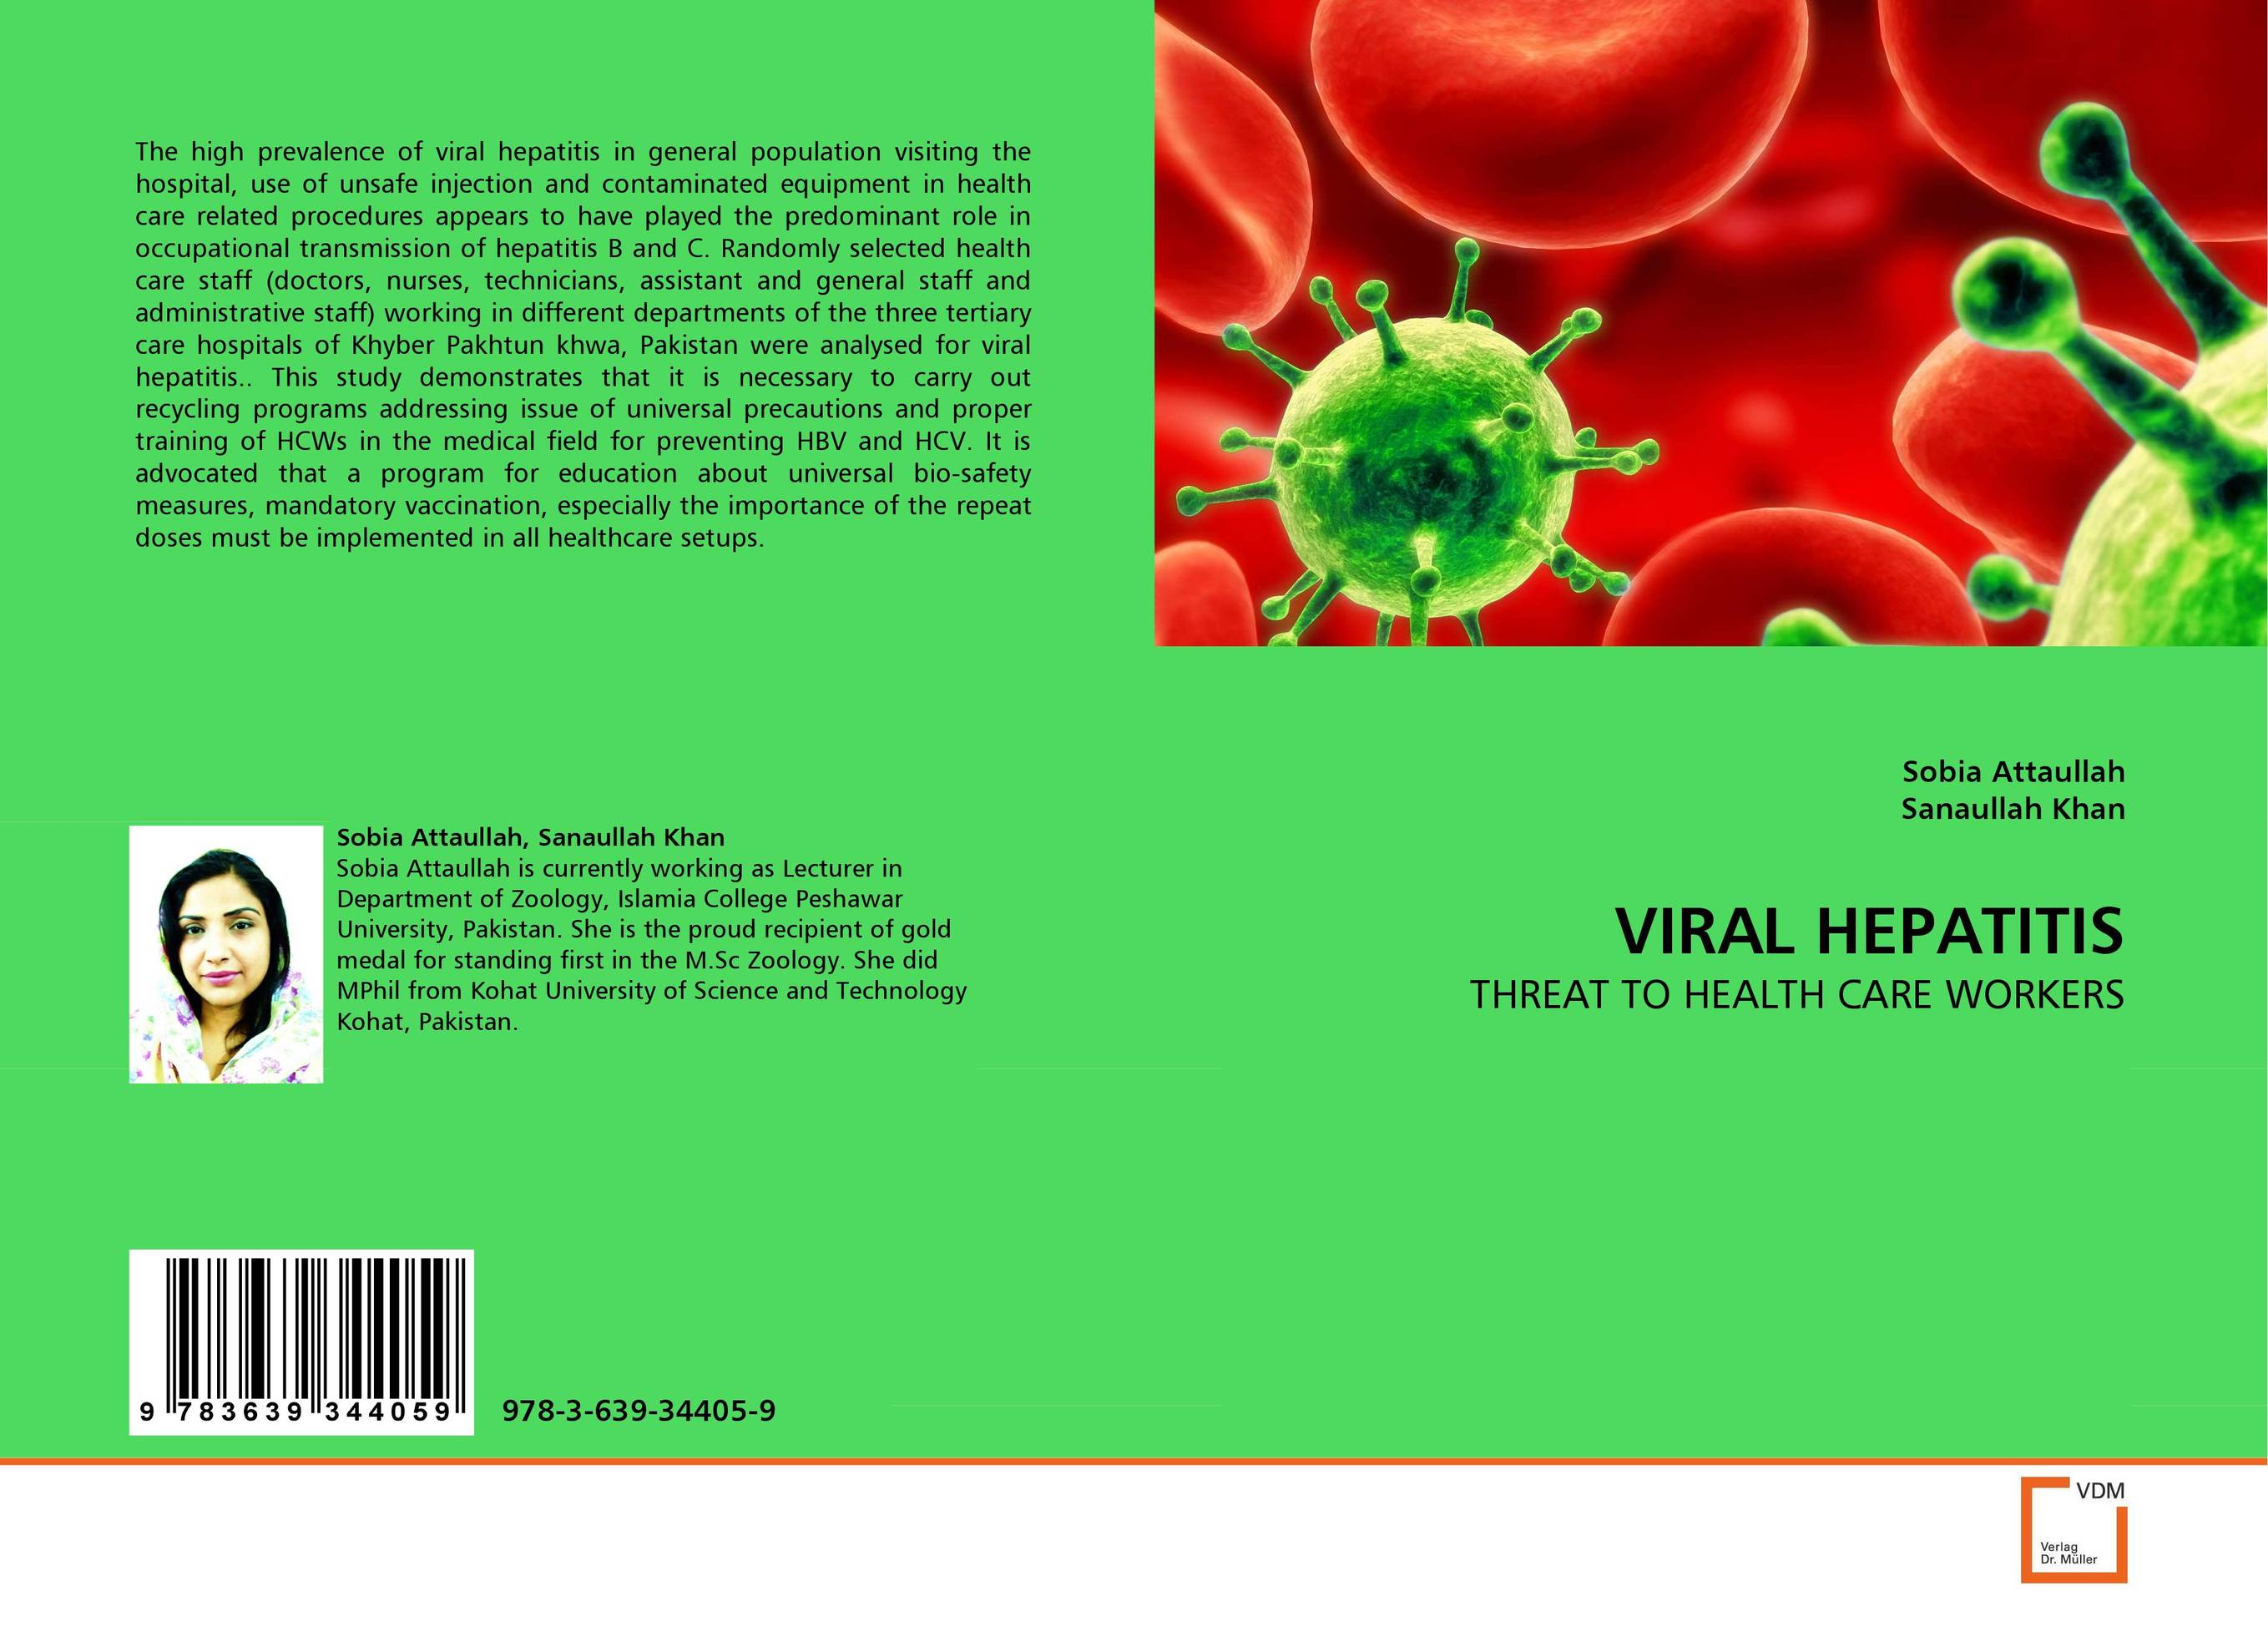 VIRAL HEPATITIS beers the role of immunological factors in viral and onc ogenic processes